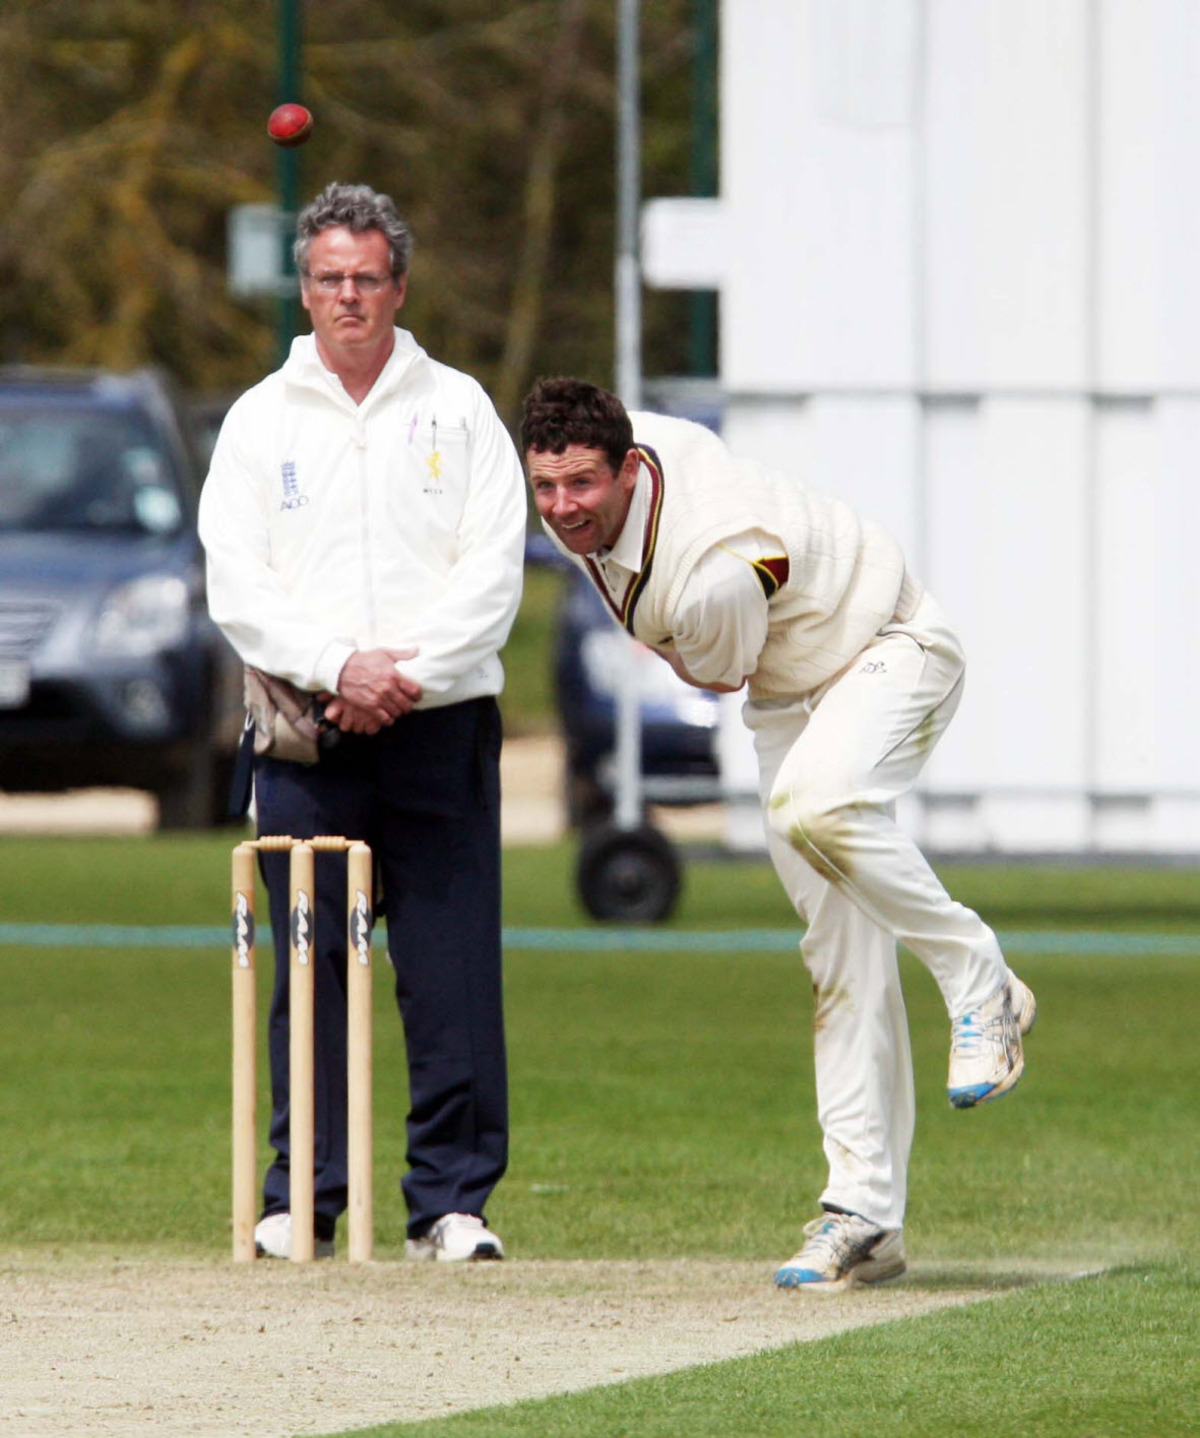 Luke Ryan led Oxfordshire's attack with 4-78